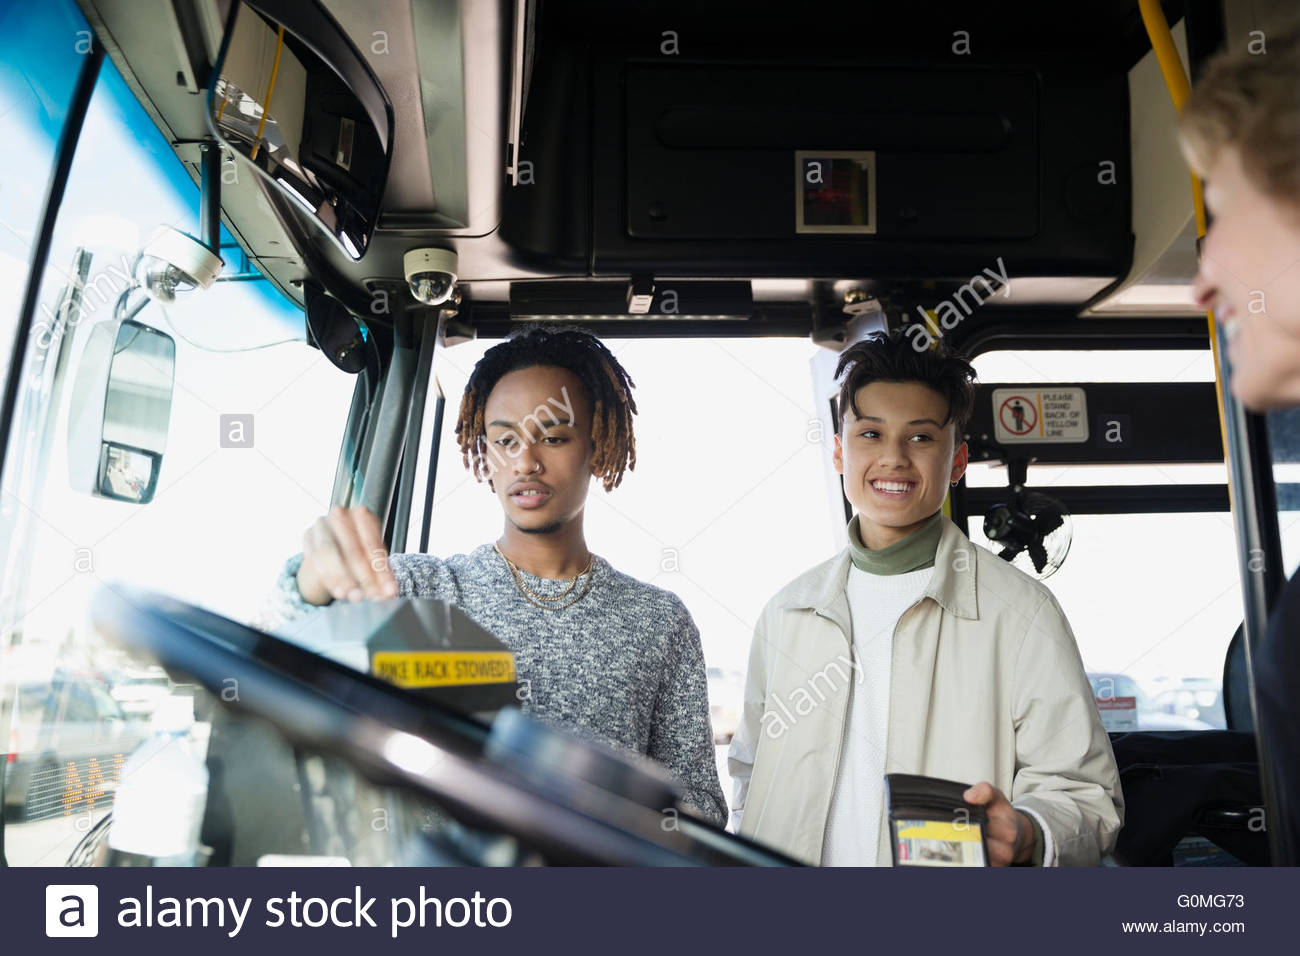 Young men boarding bus giving ticket to driver - Stock Image